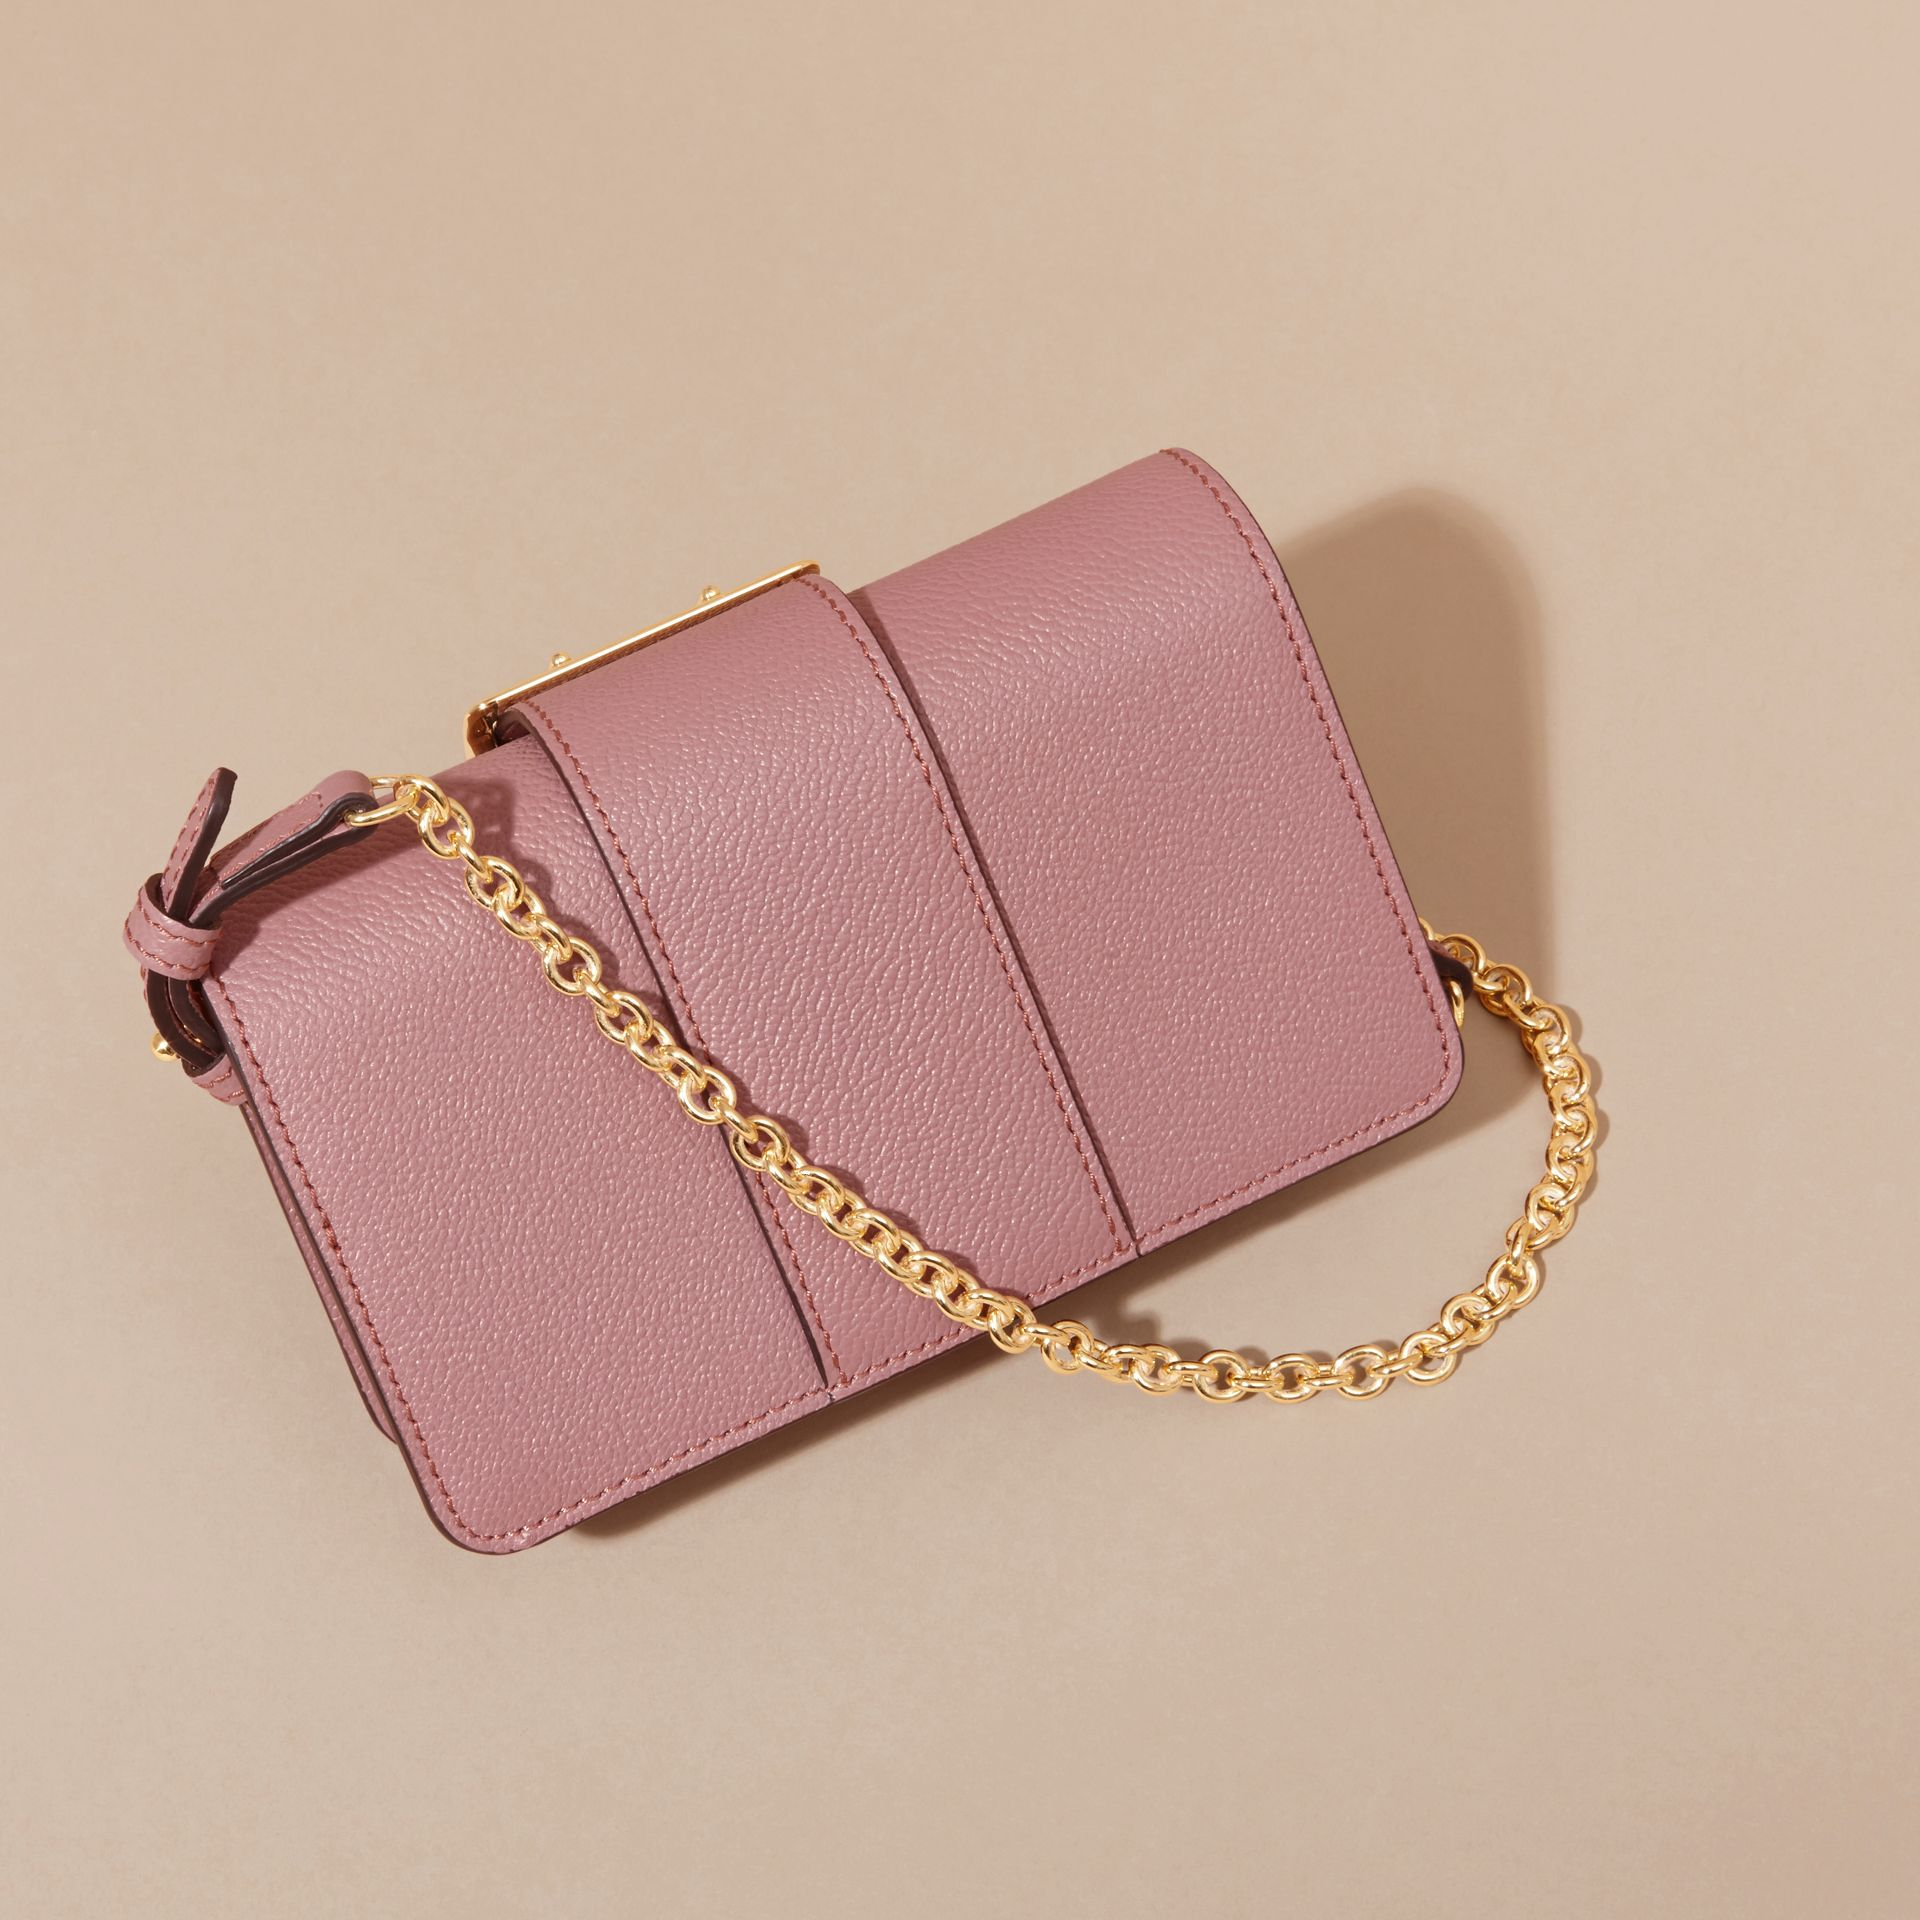 Borsa The Buckle mini in pelle a grana (Rosa Polvere) - Donna | Burberry - immagine della galleria 5